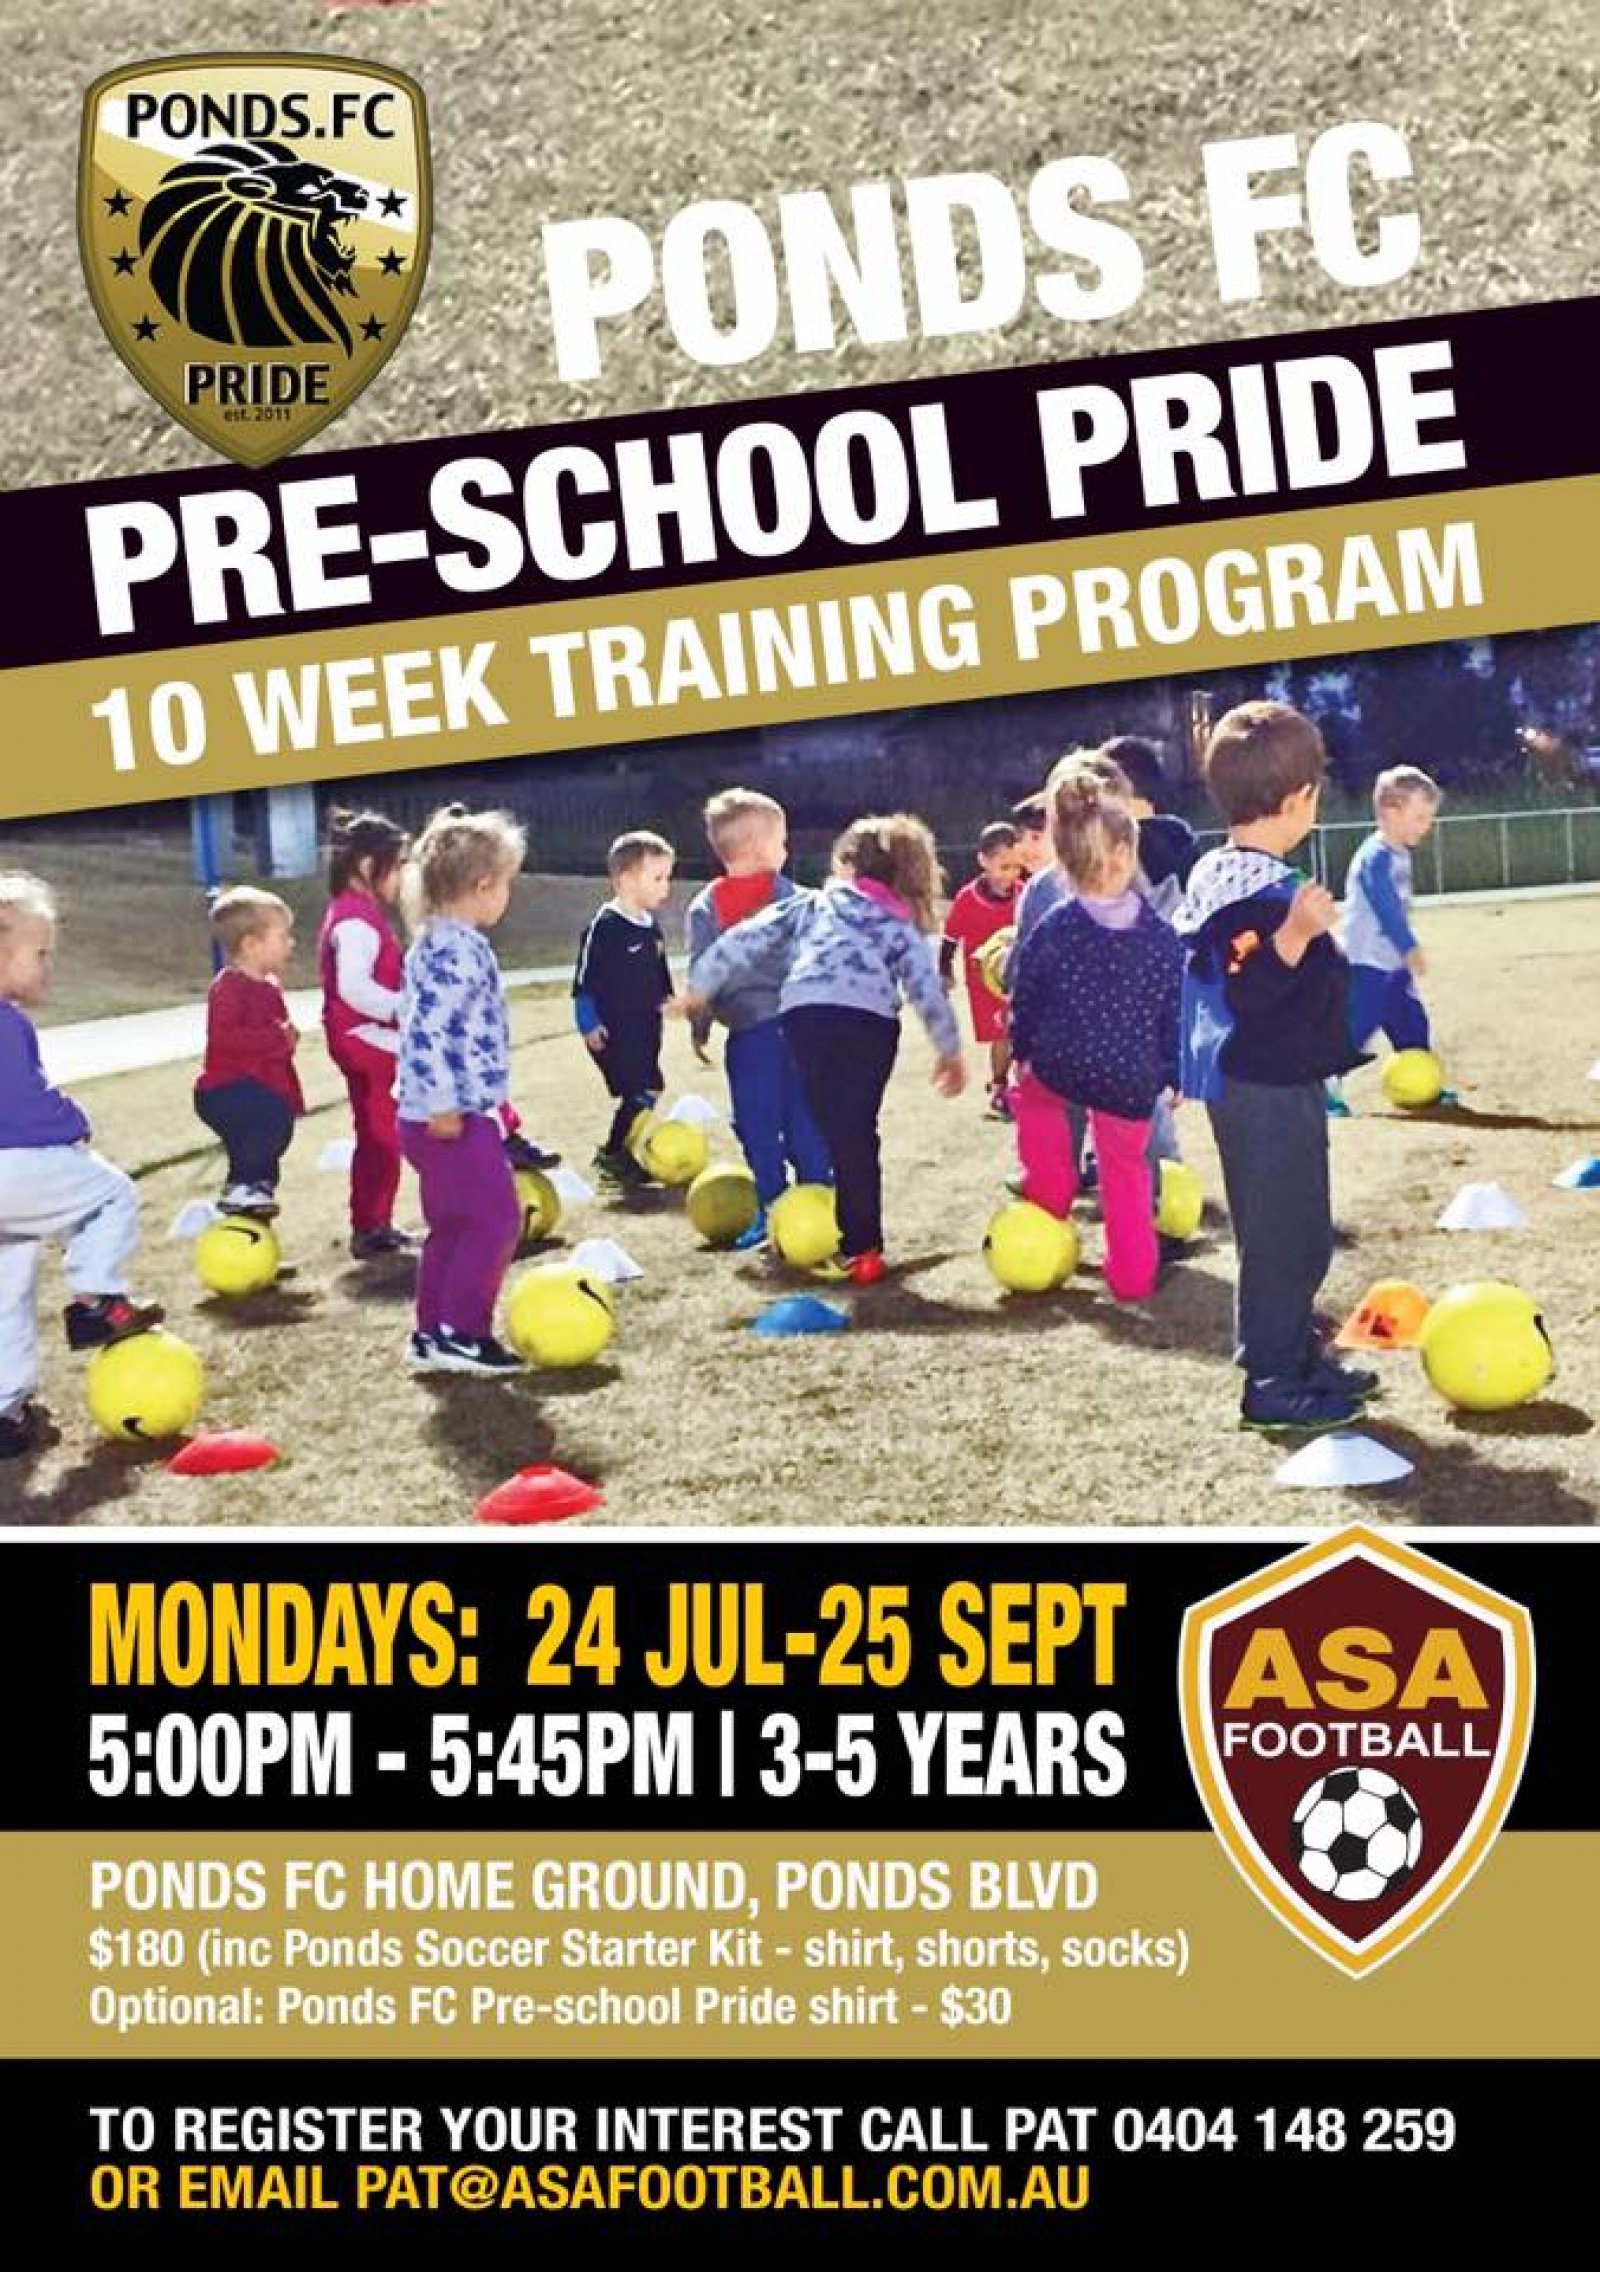 Ponds FC Pre-school Pride 10 week training program